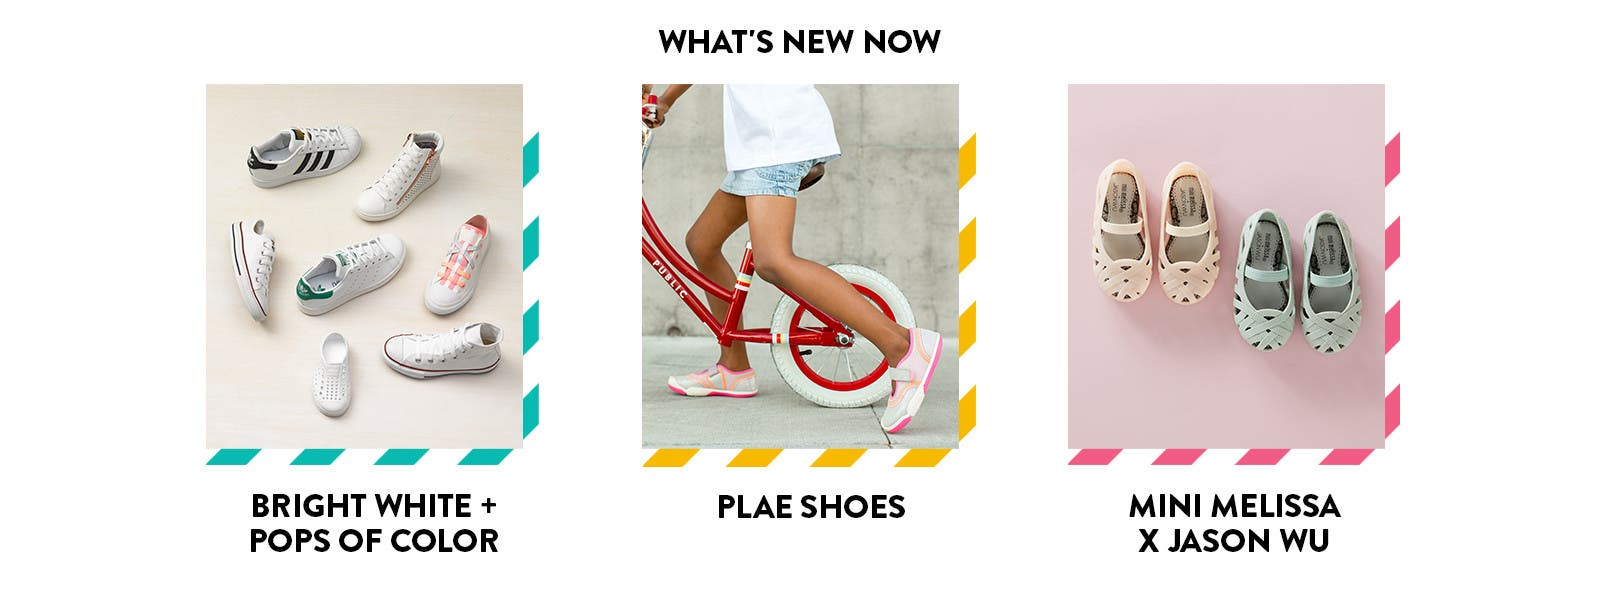 What's new now in girls' shoes: bright white sneakers with pops of color, flats from Mini Melissa x Jason Wu, and new styles from PLAE.